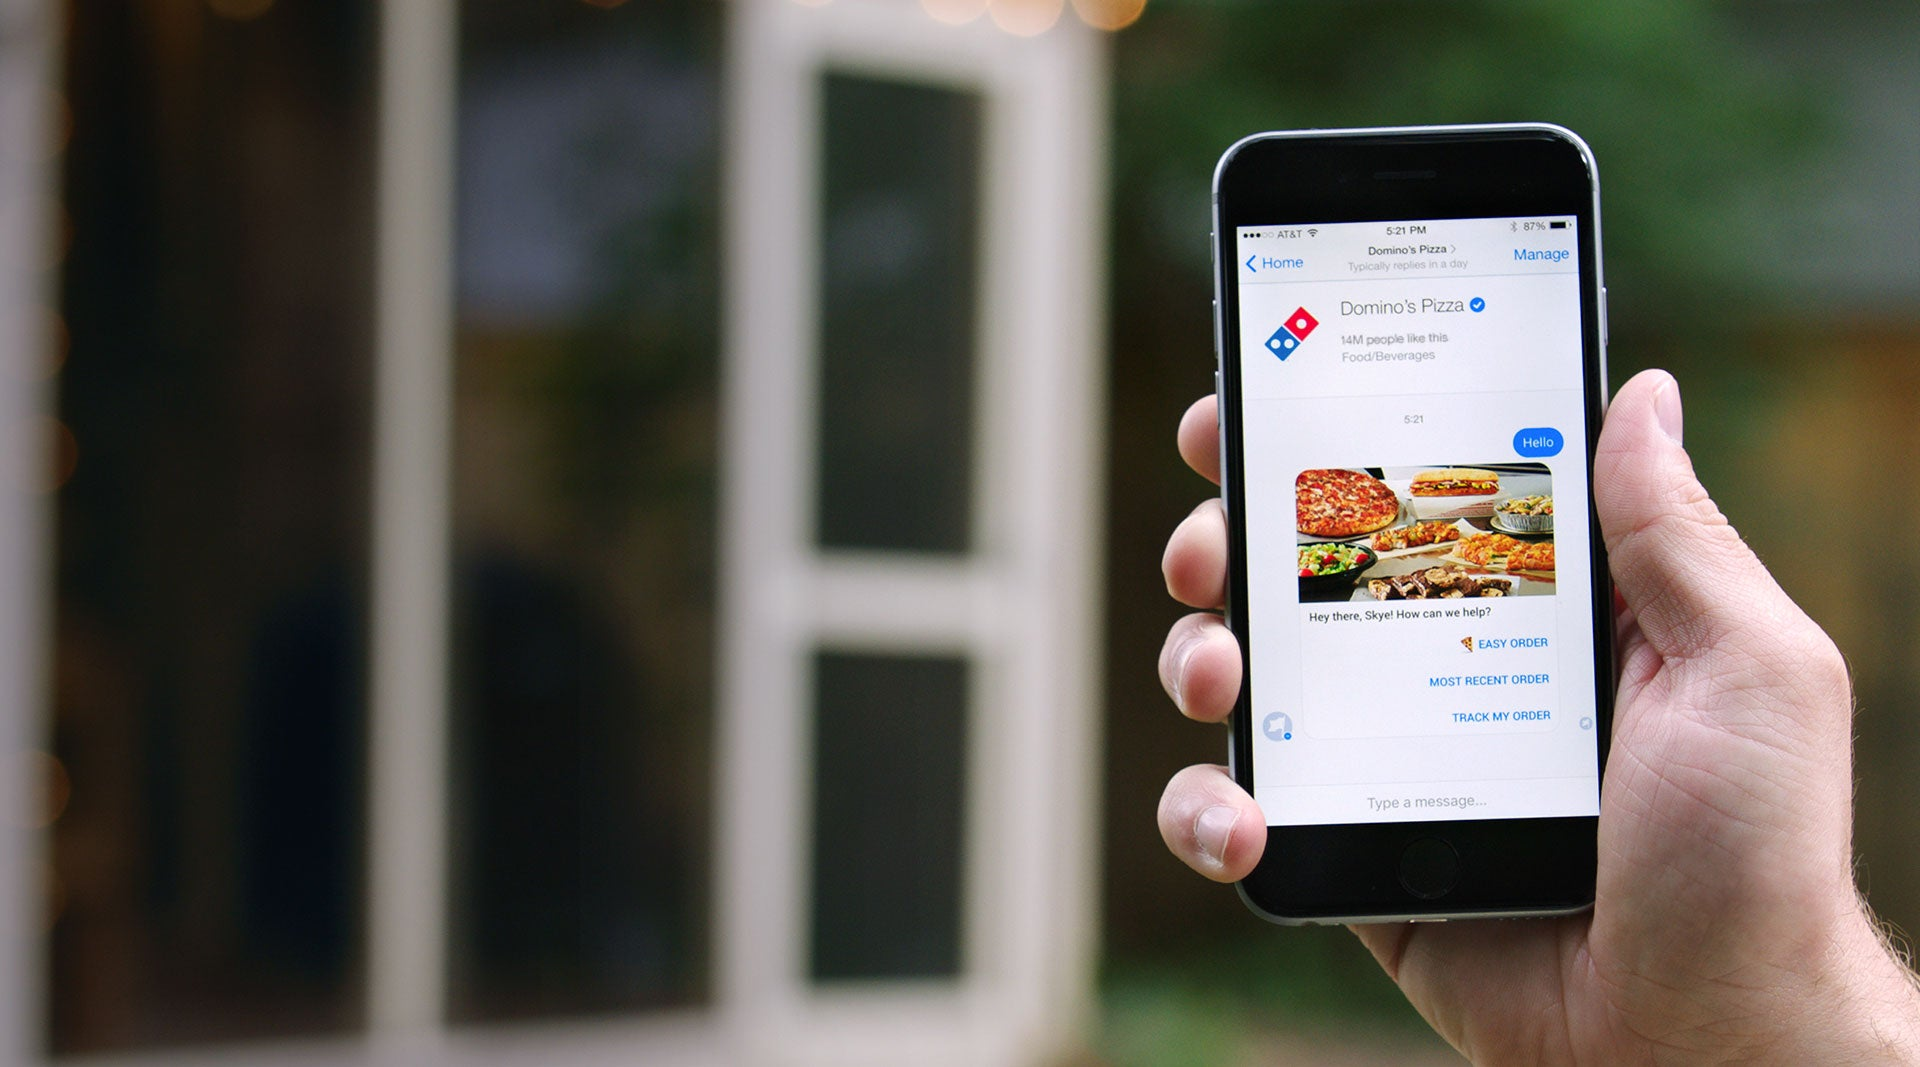 A phone being used to order Domino's pizza via Facebook Messenger.